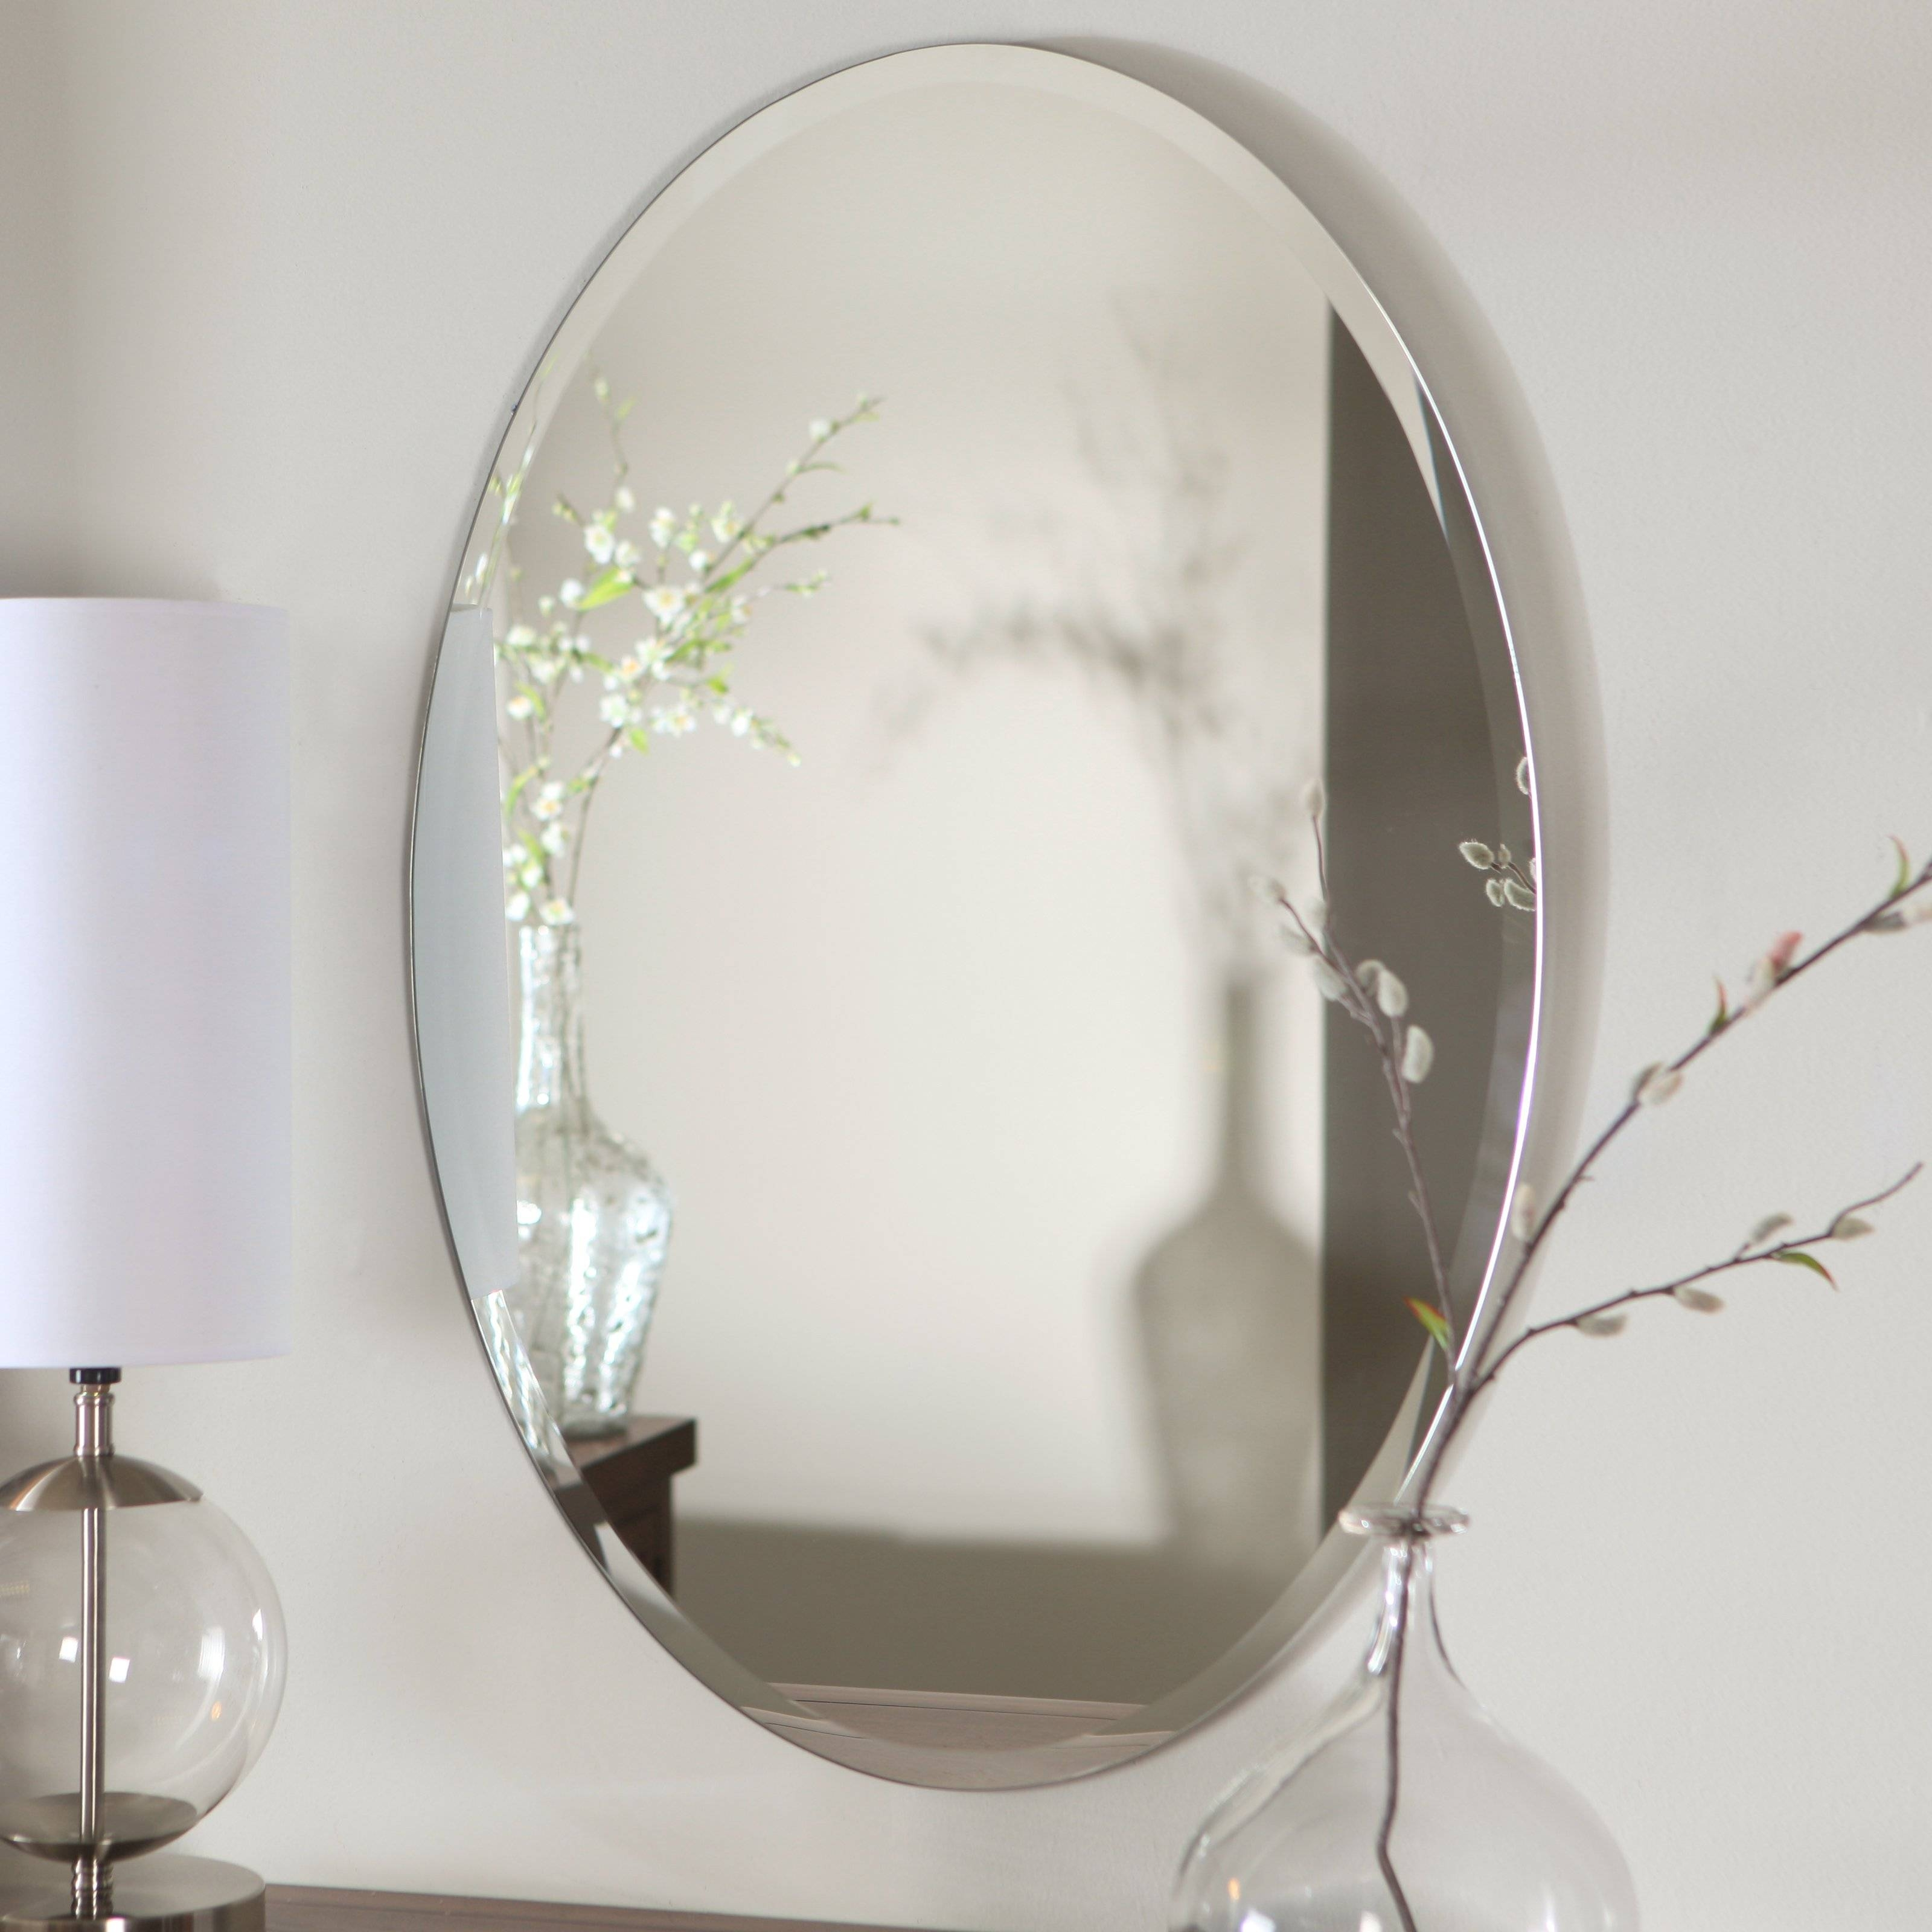 Décor Wonderland Frameless Aldo Wall Mirror - 23.5W X 31.5H In intended for Pretty Mirrors for Walls (Image 9 of 15)